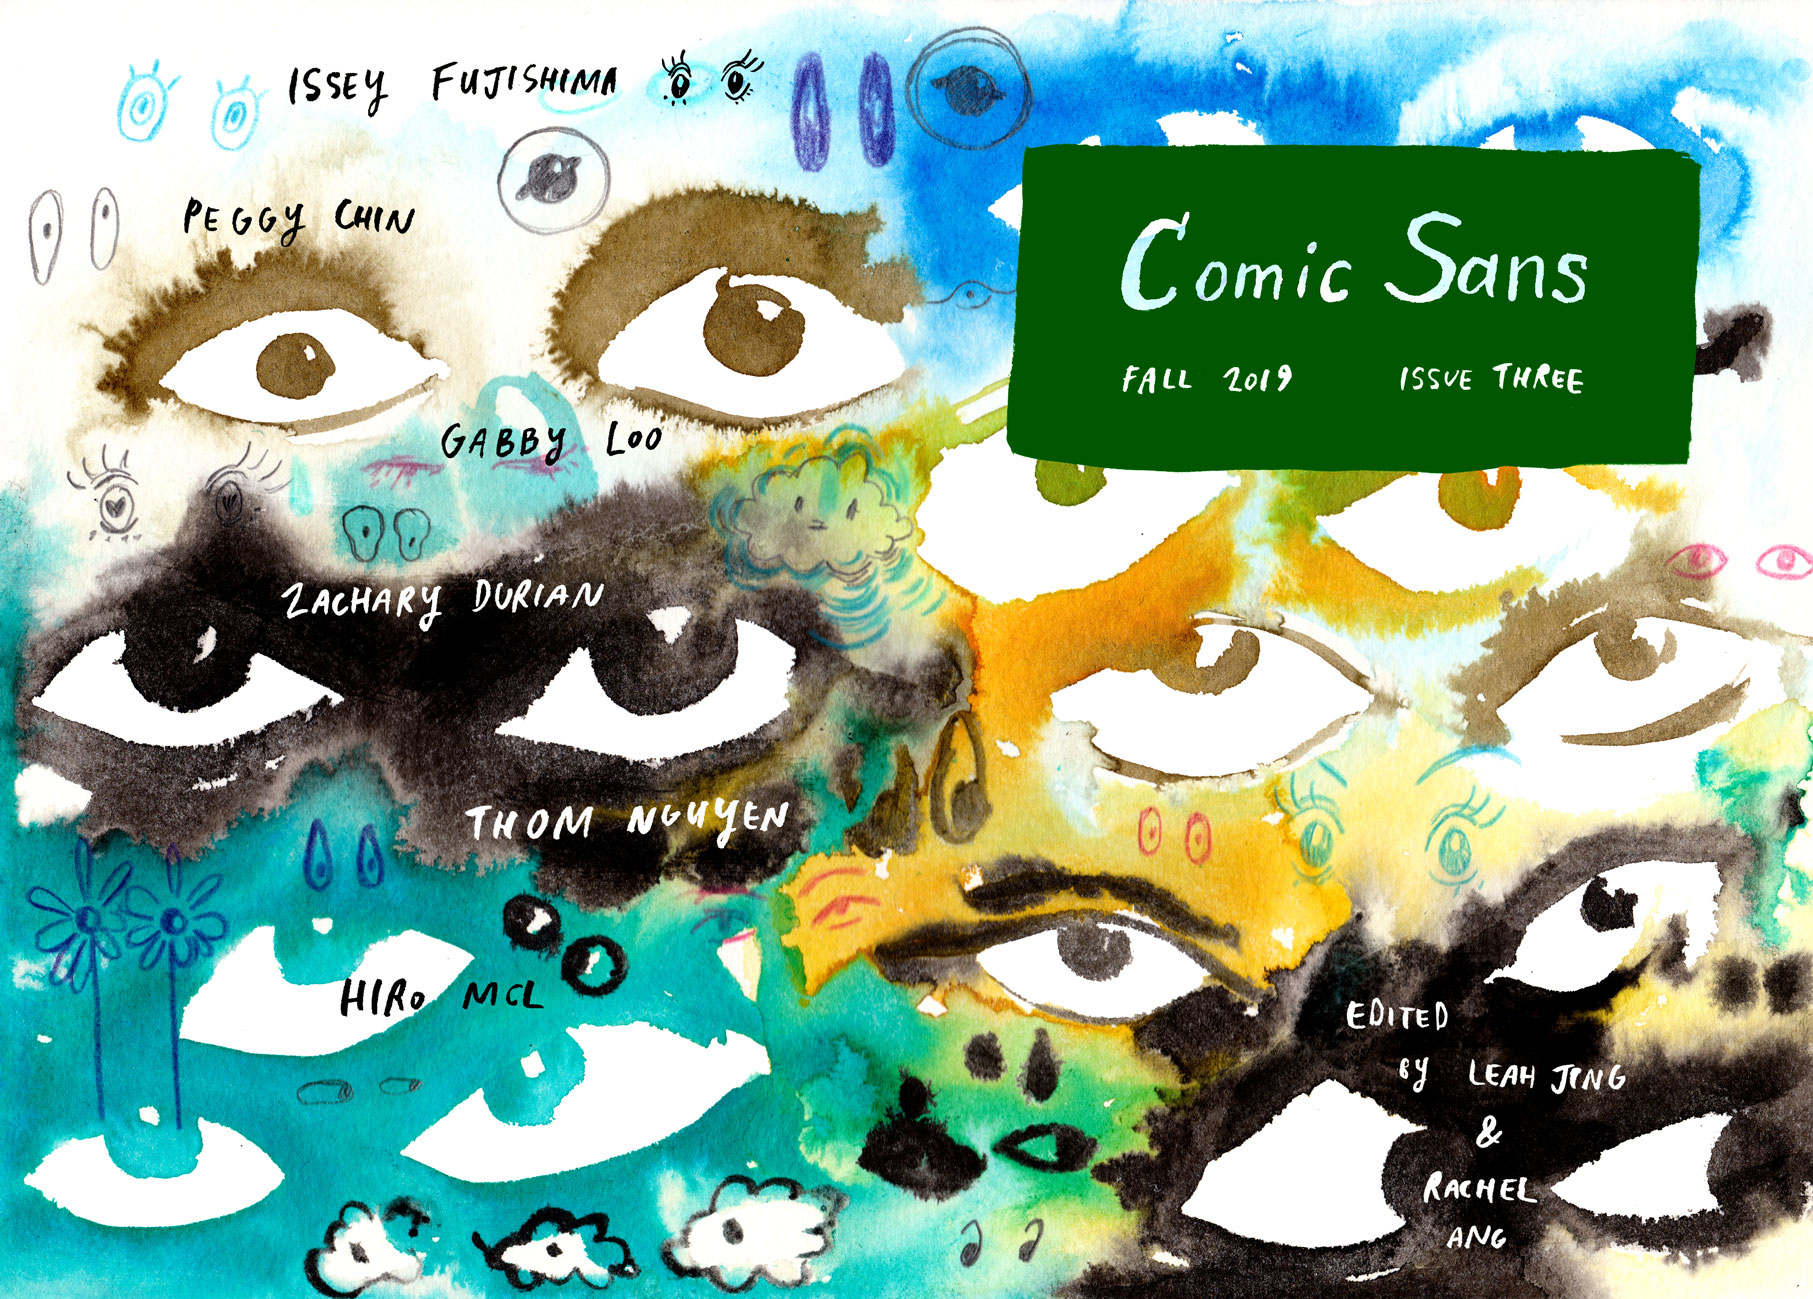 COMIC SANS: Comic Sans is a serialized anthology of outstanding Australian comics, edited by Leah Jing Mcintosh (Liminal Magazine) and Rachel Ang.